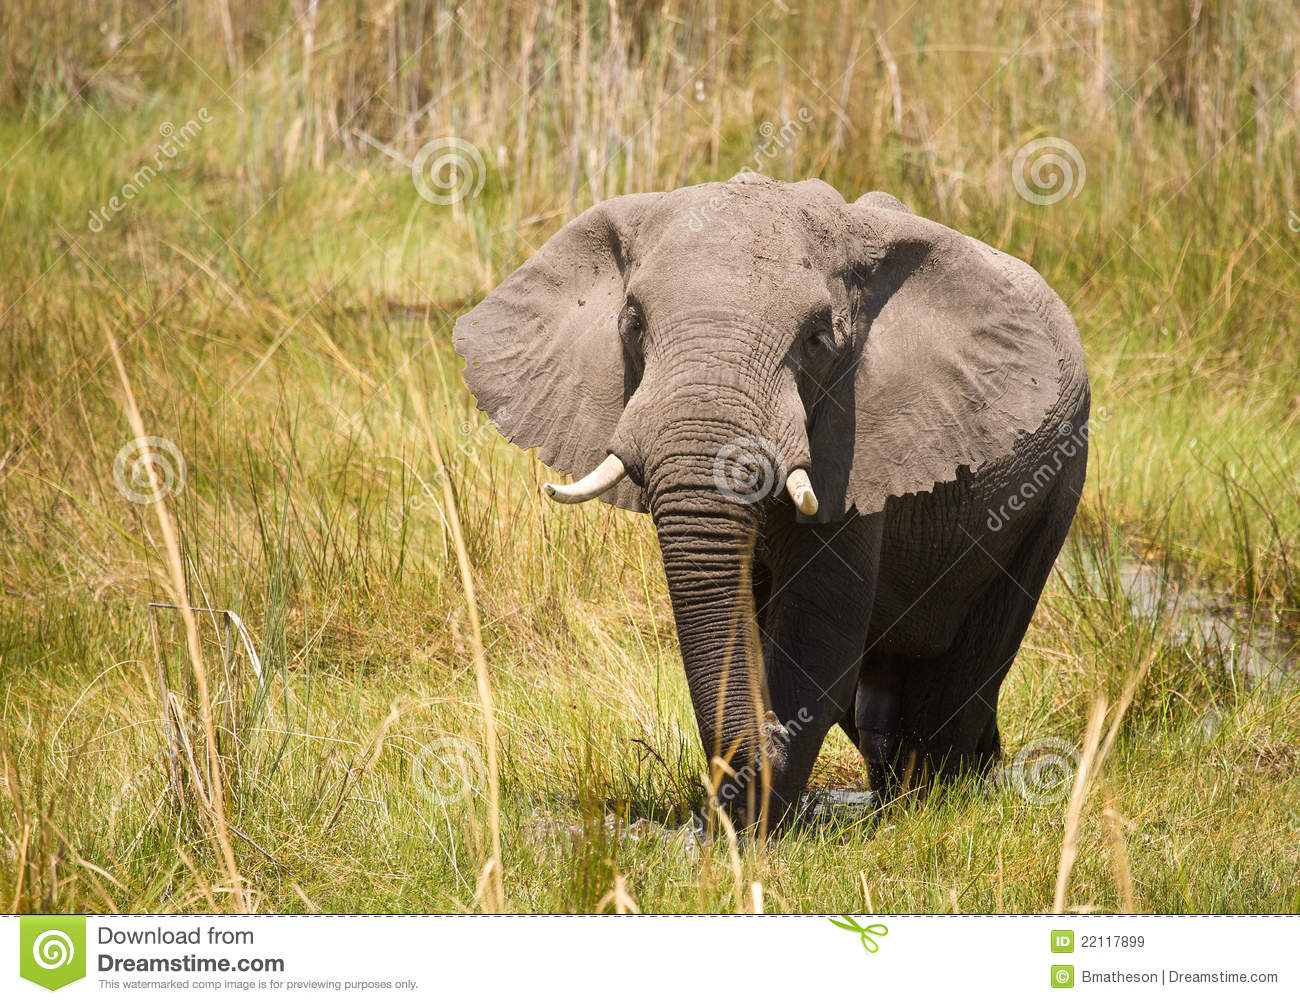 life span of the asian elephant